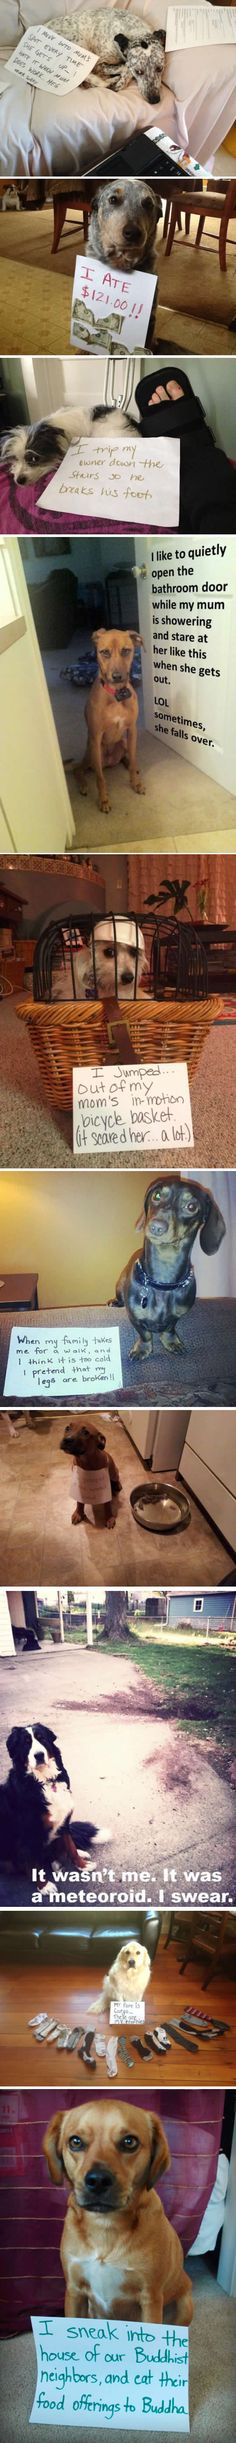 LOVE dog shame..so cute